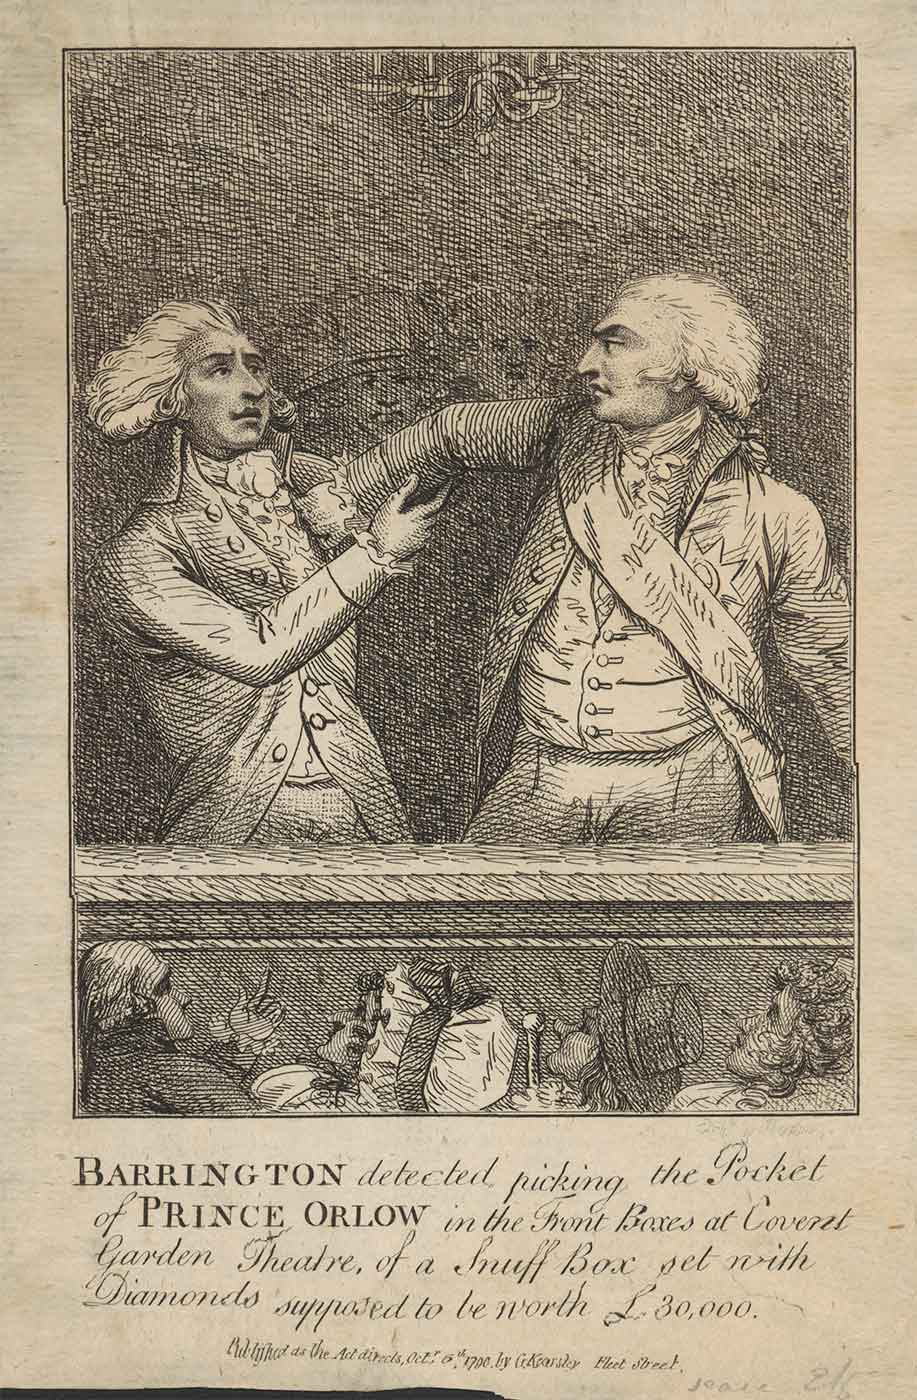 Print illustration of two men in 18th Century attire. One man is attempting to pick-pocket the other man, while people look on. - click to view larger image